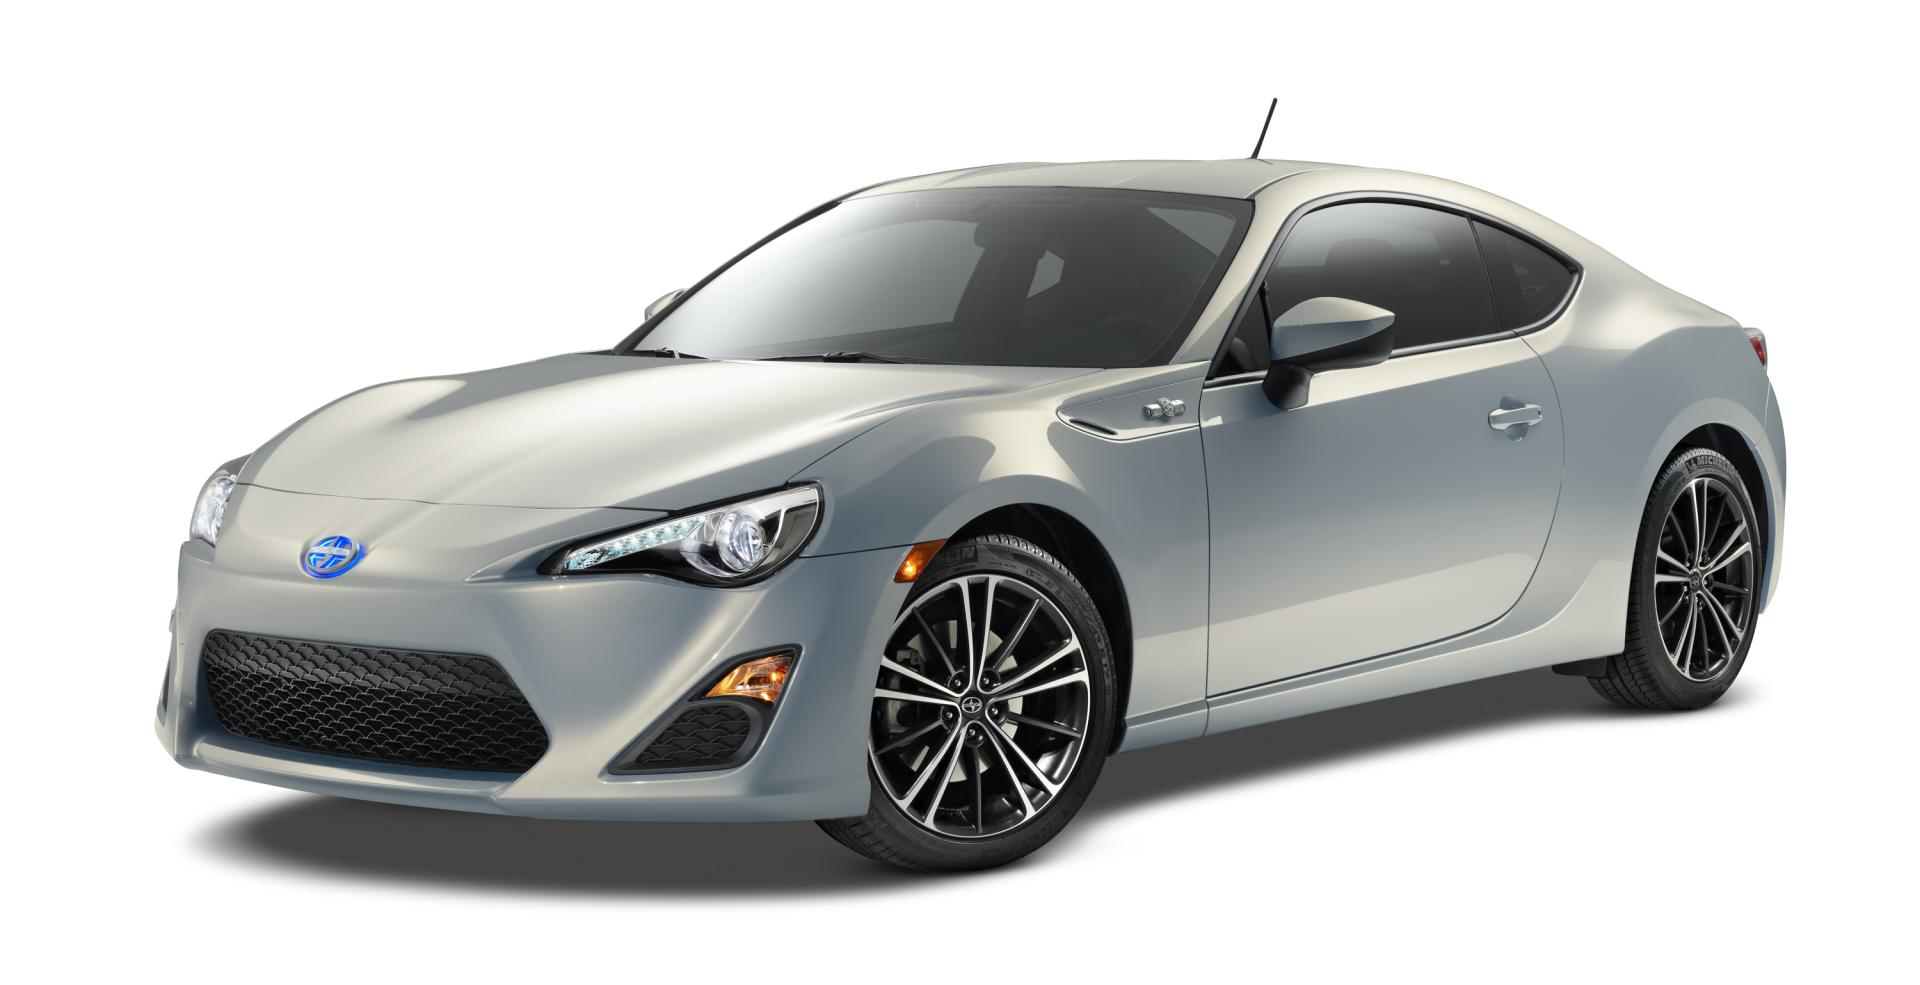 2014 scion fr s series 10 technical specifications and data engine dimensions and mechanical. Black Bedroom Furniture Sets. Home Design Ideas